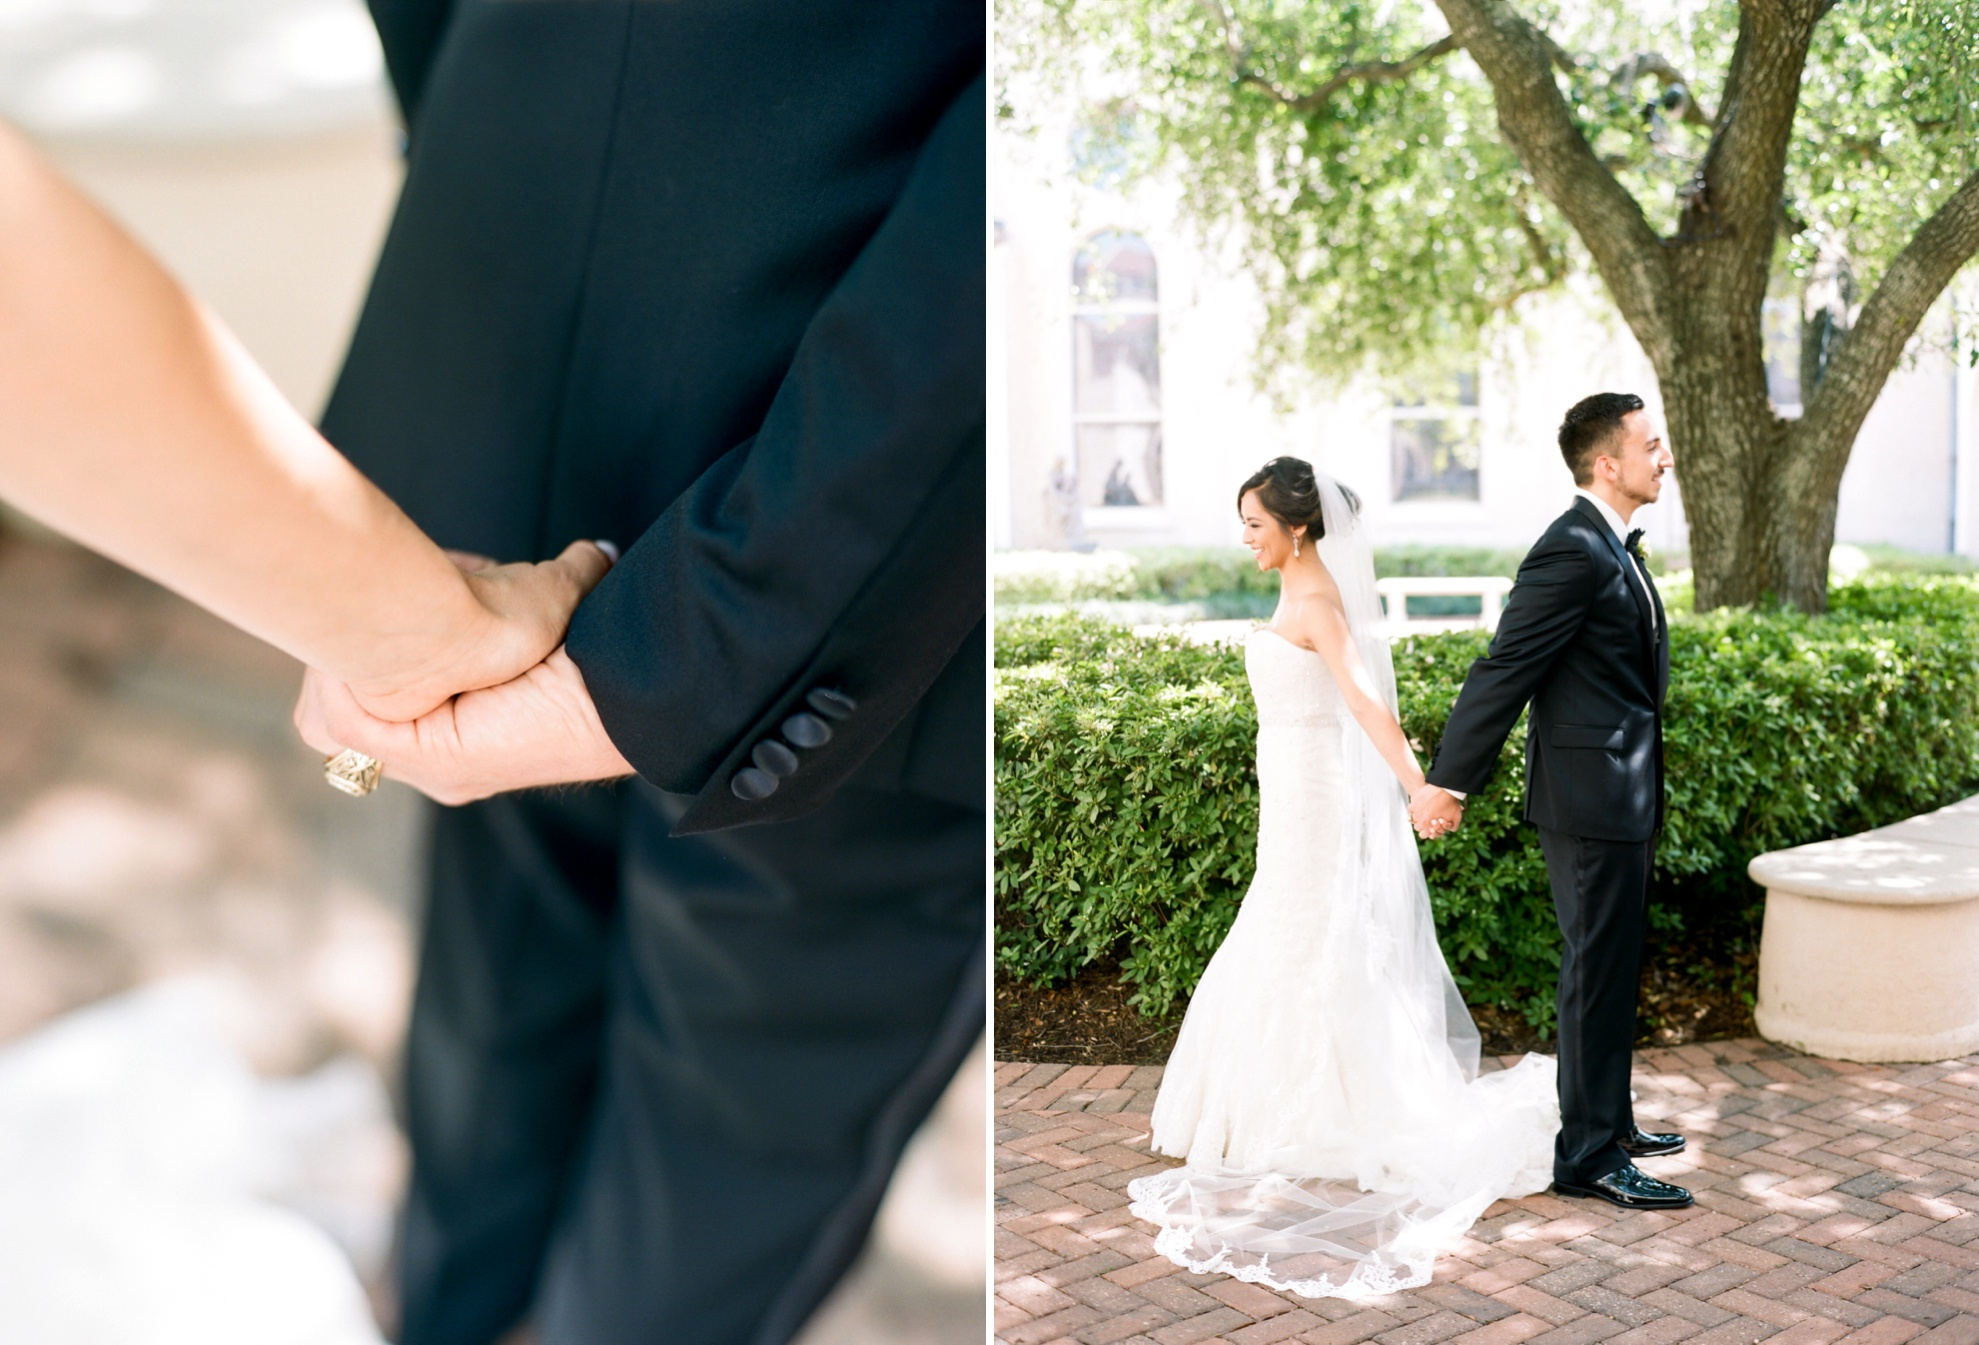 St.-Anne-Catholic-Church-Wedding-Houston-Ceremony-Photographer-Dana-Fernandez-Photography.jpg